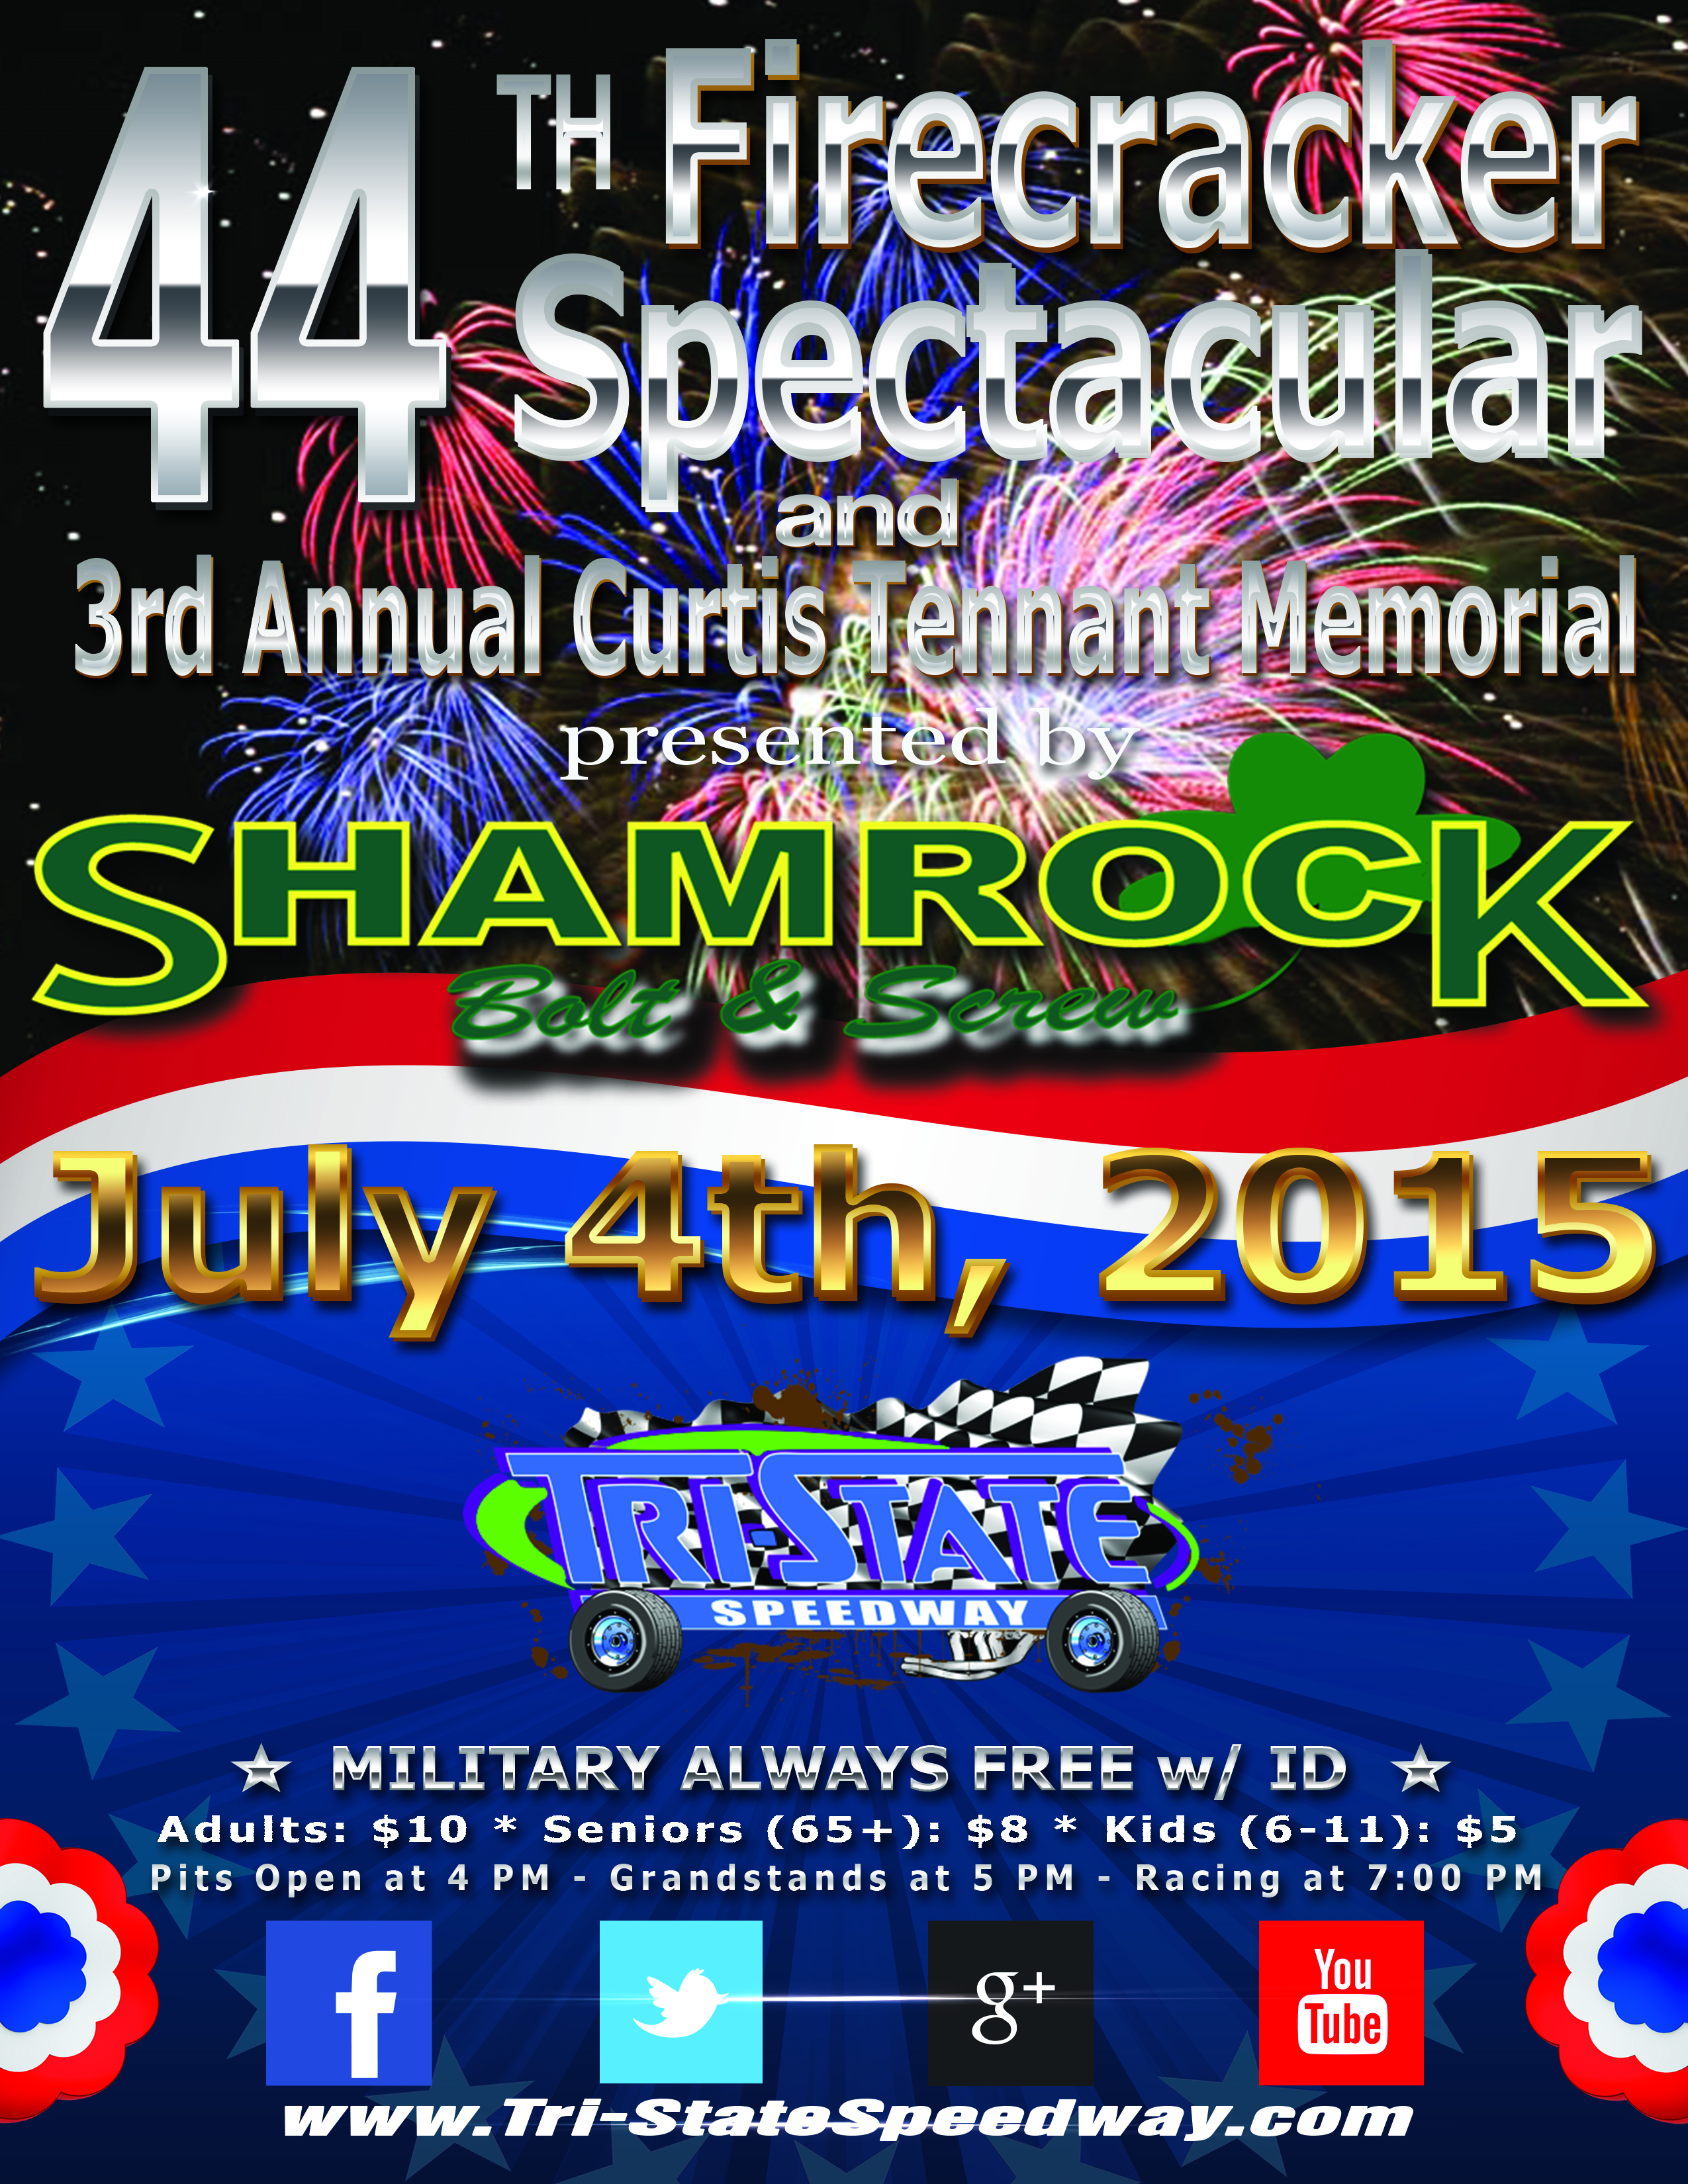 44th Annual Firecracker Spectacular & 3rd Annual Curtis Tennant Memorial